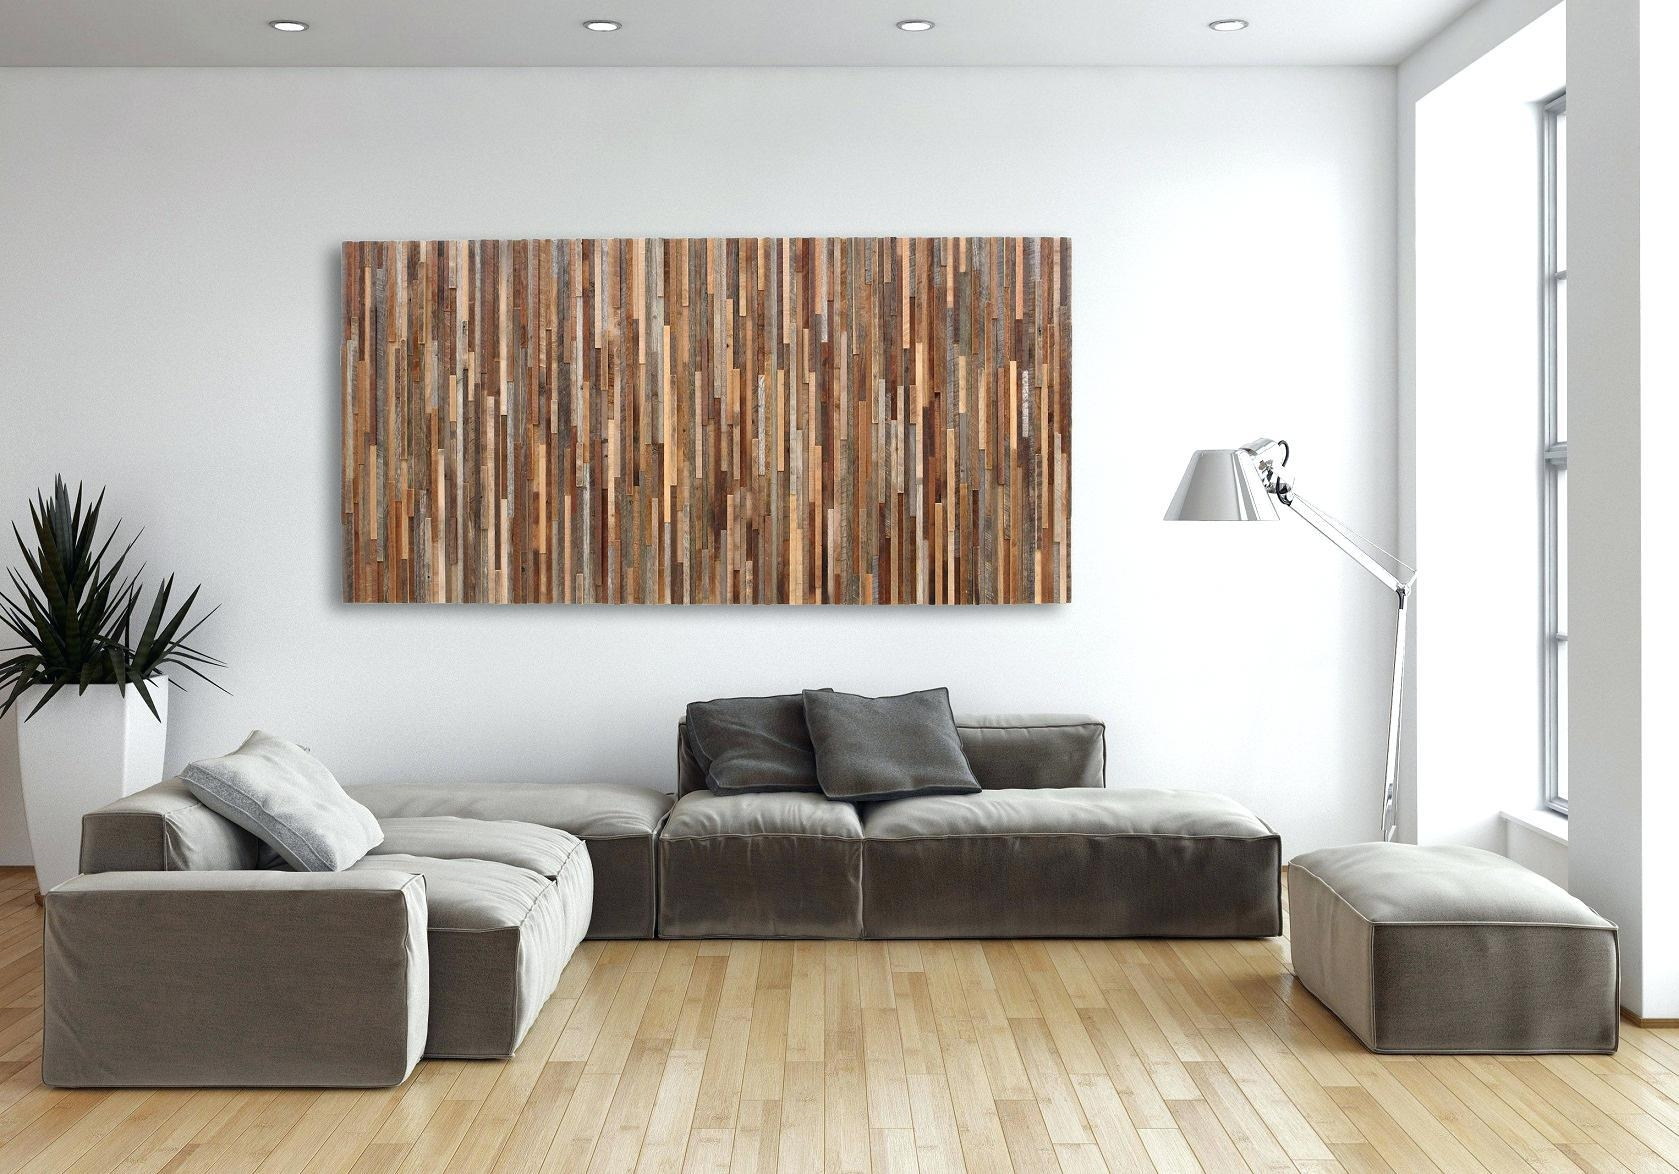 Big Artwork For Walls 20 Collection Of Extra Large Framed Wall Art Wall Art Ideas